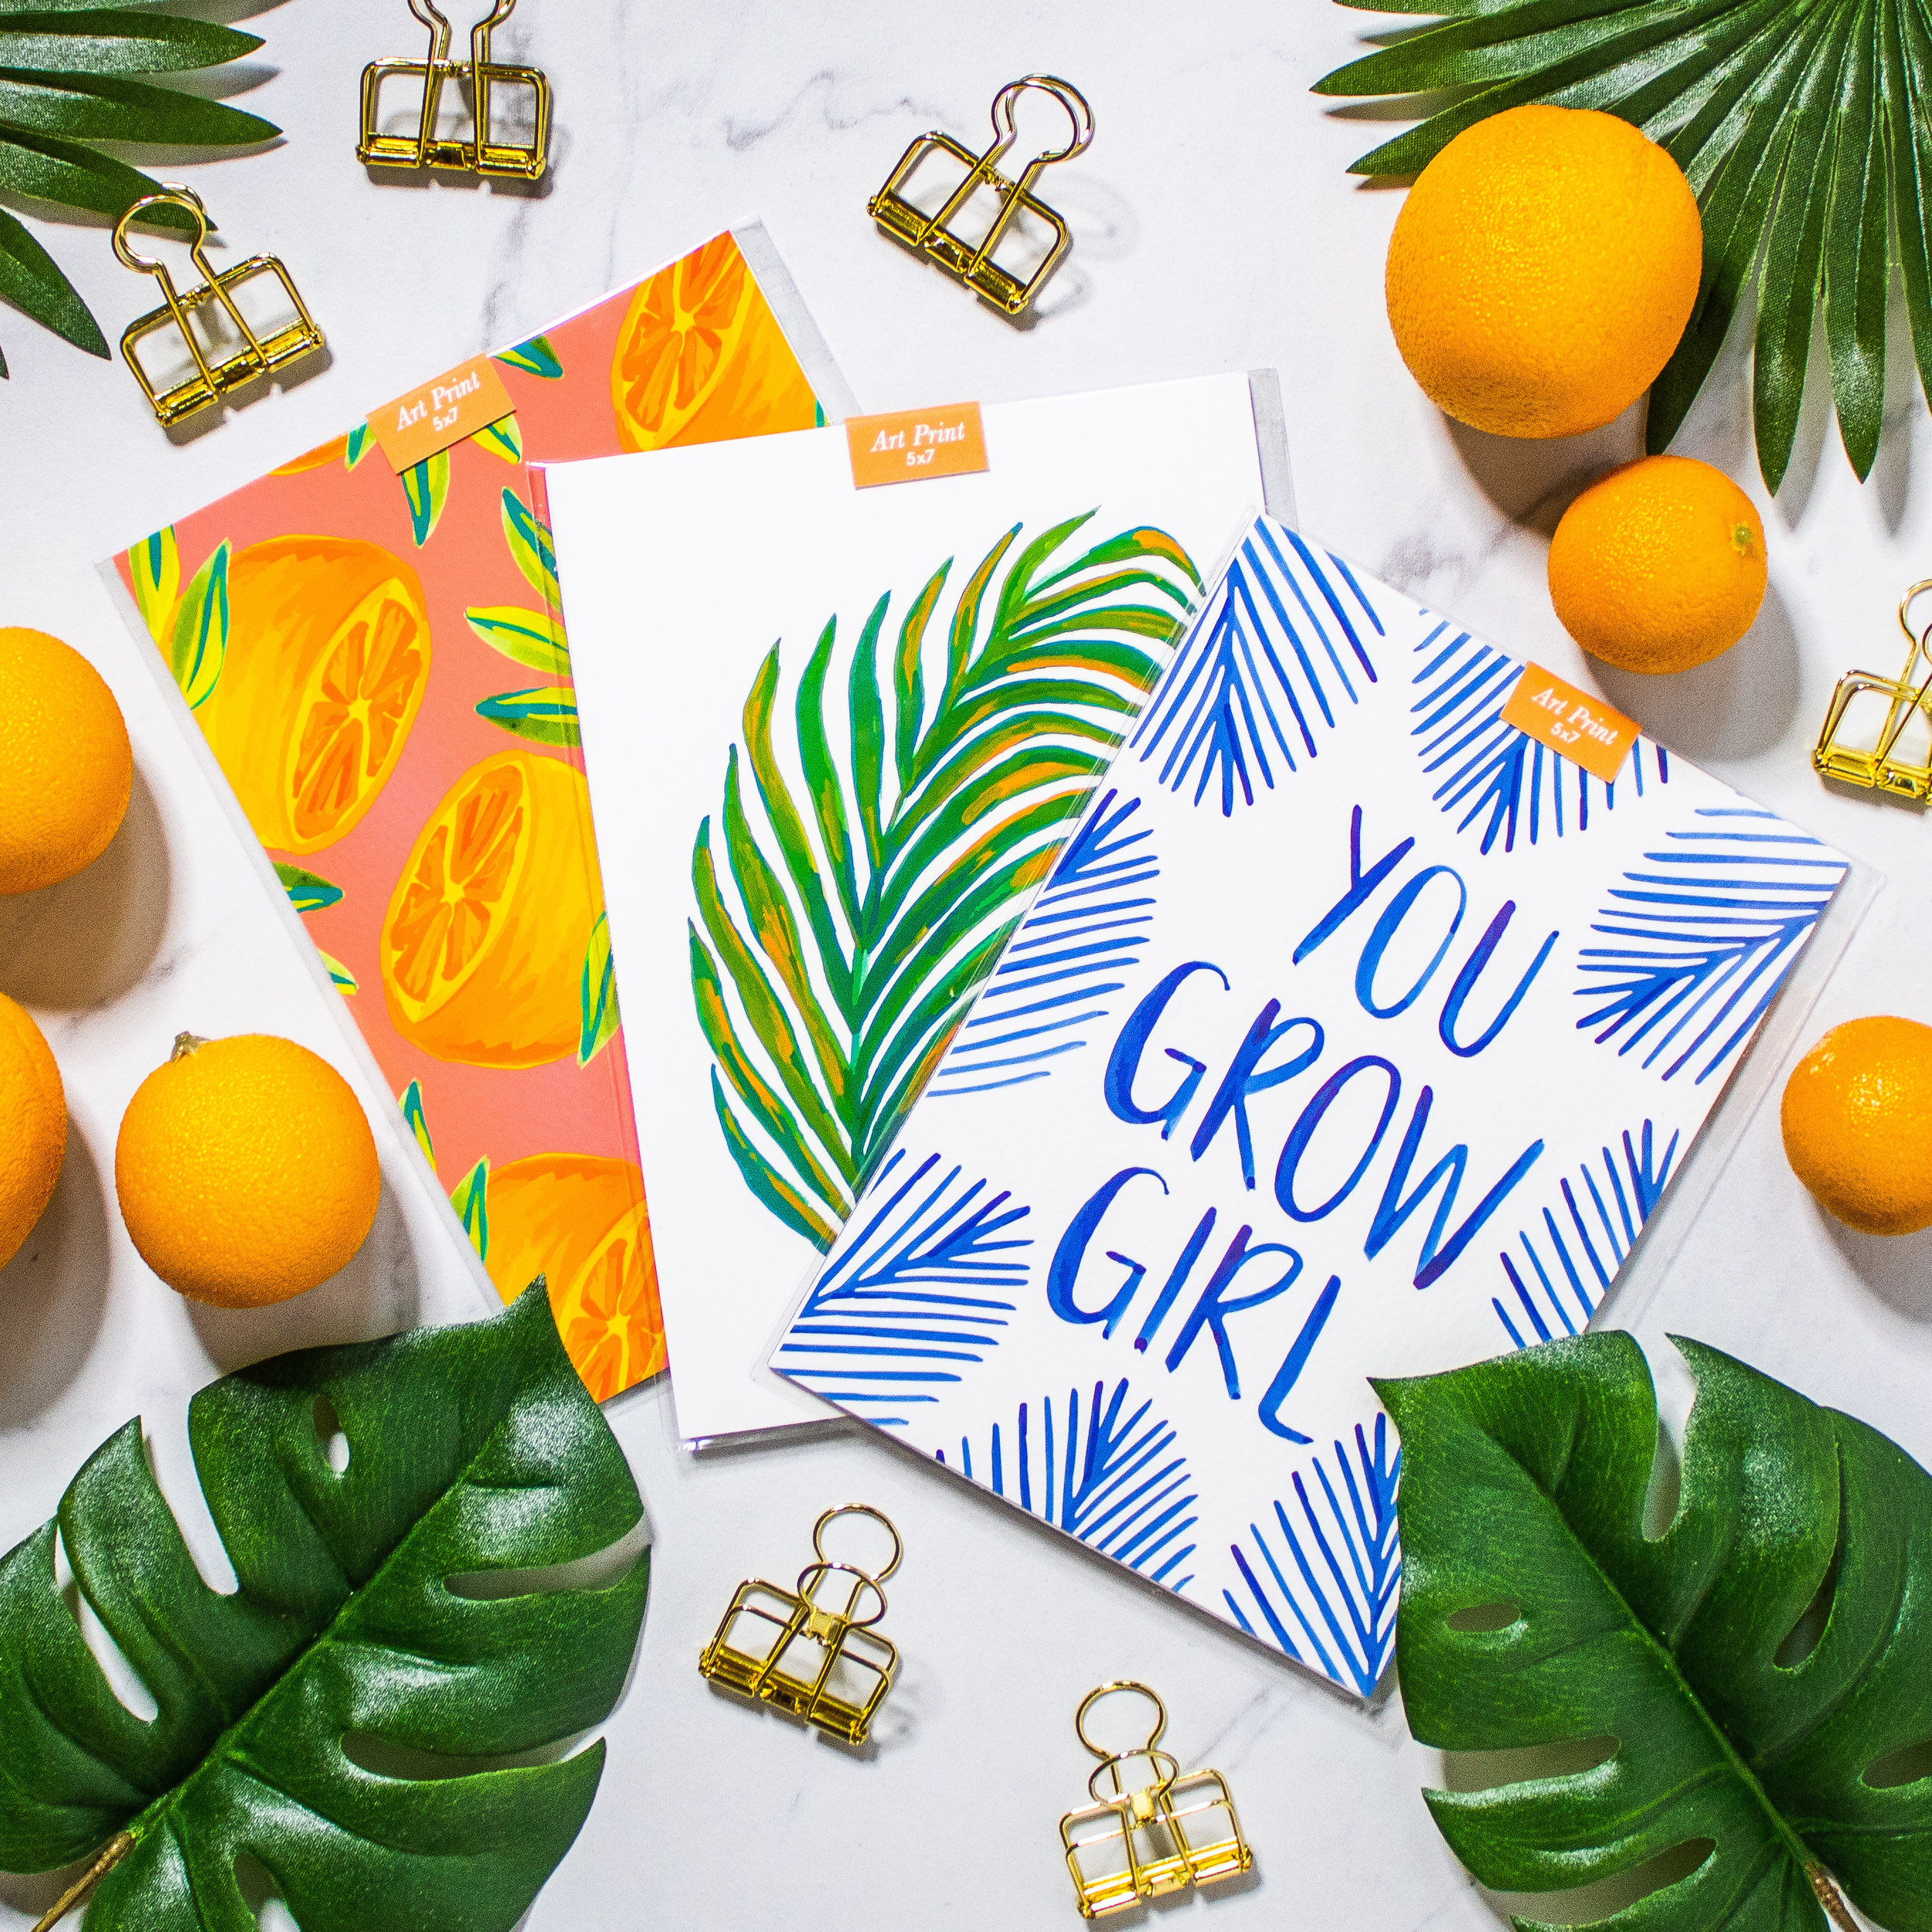 Botanical, citrus, and floral fine art prints. Archival quality, printed on cold press acid-free watercolor paper.